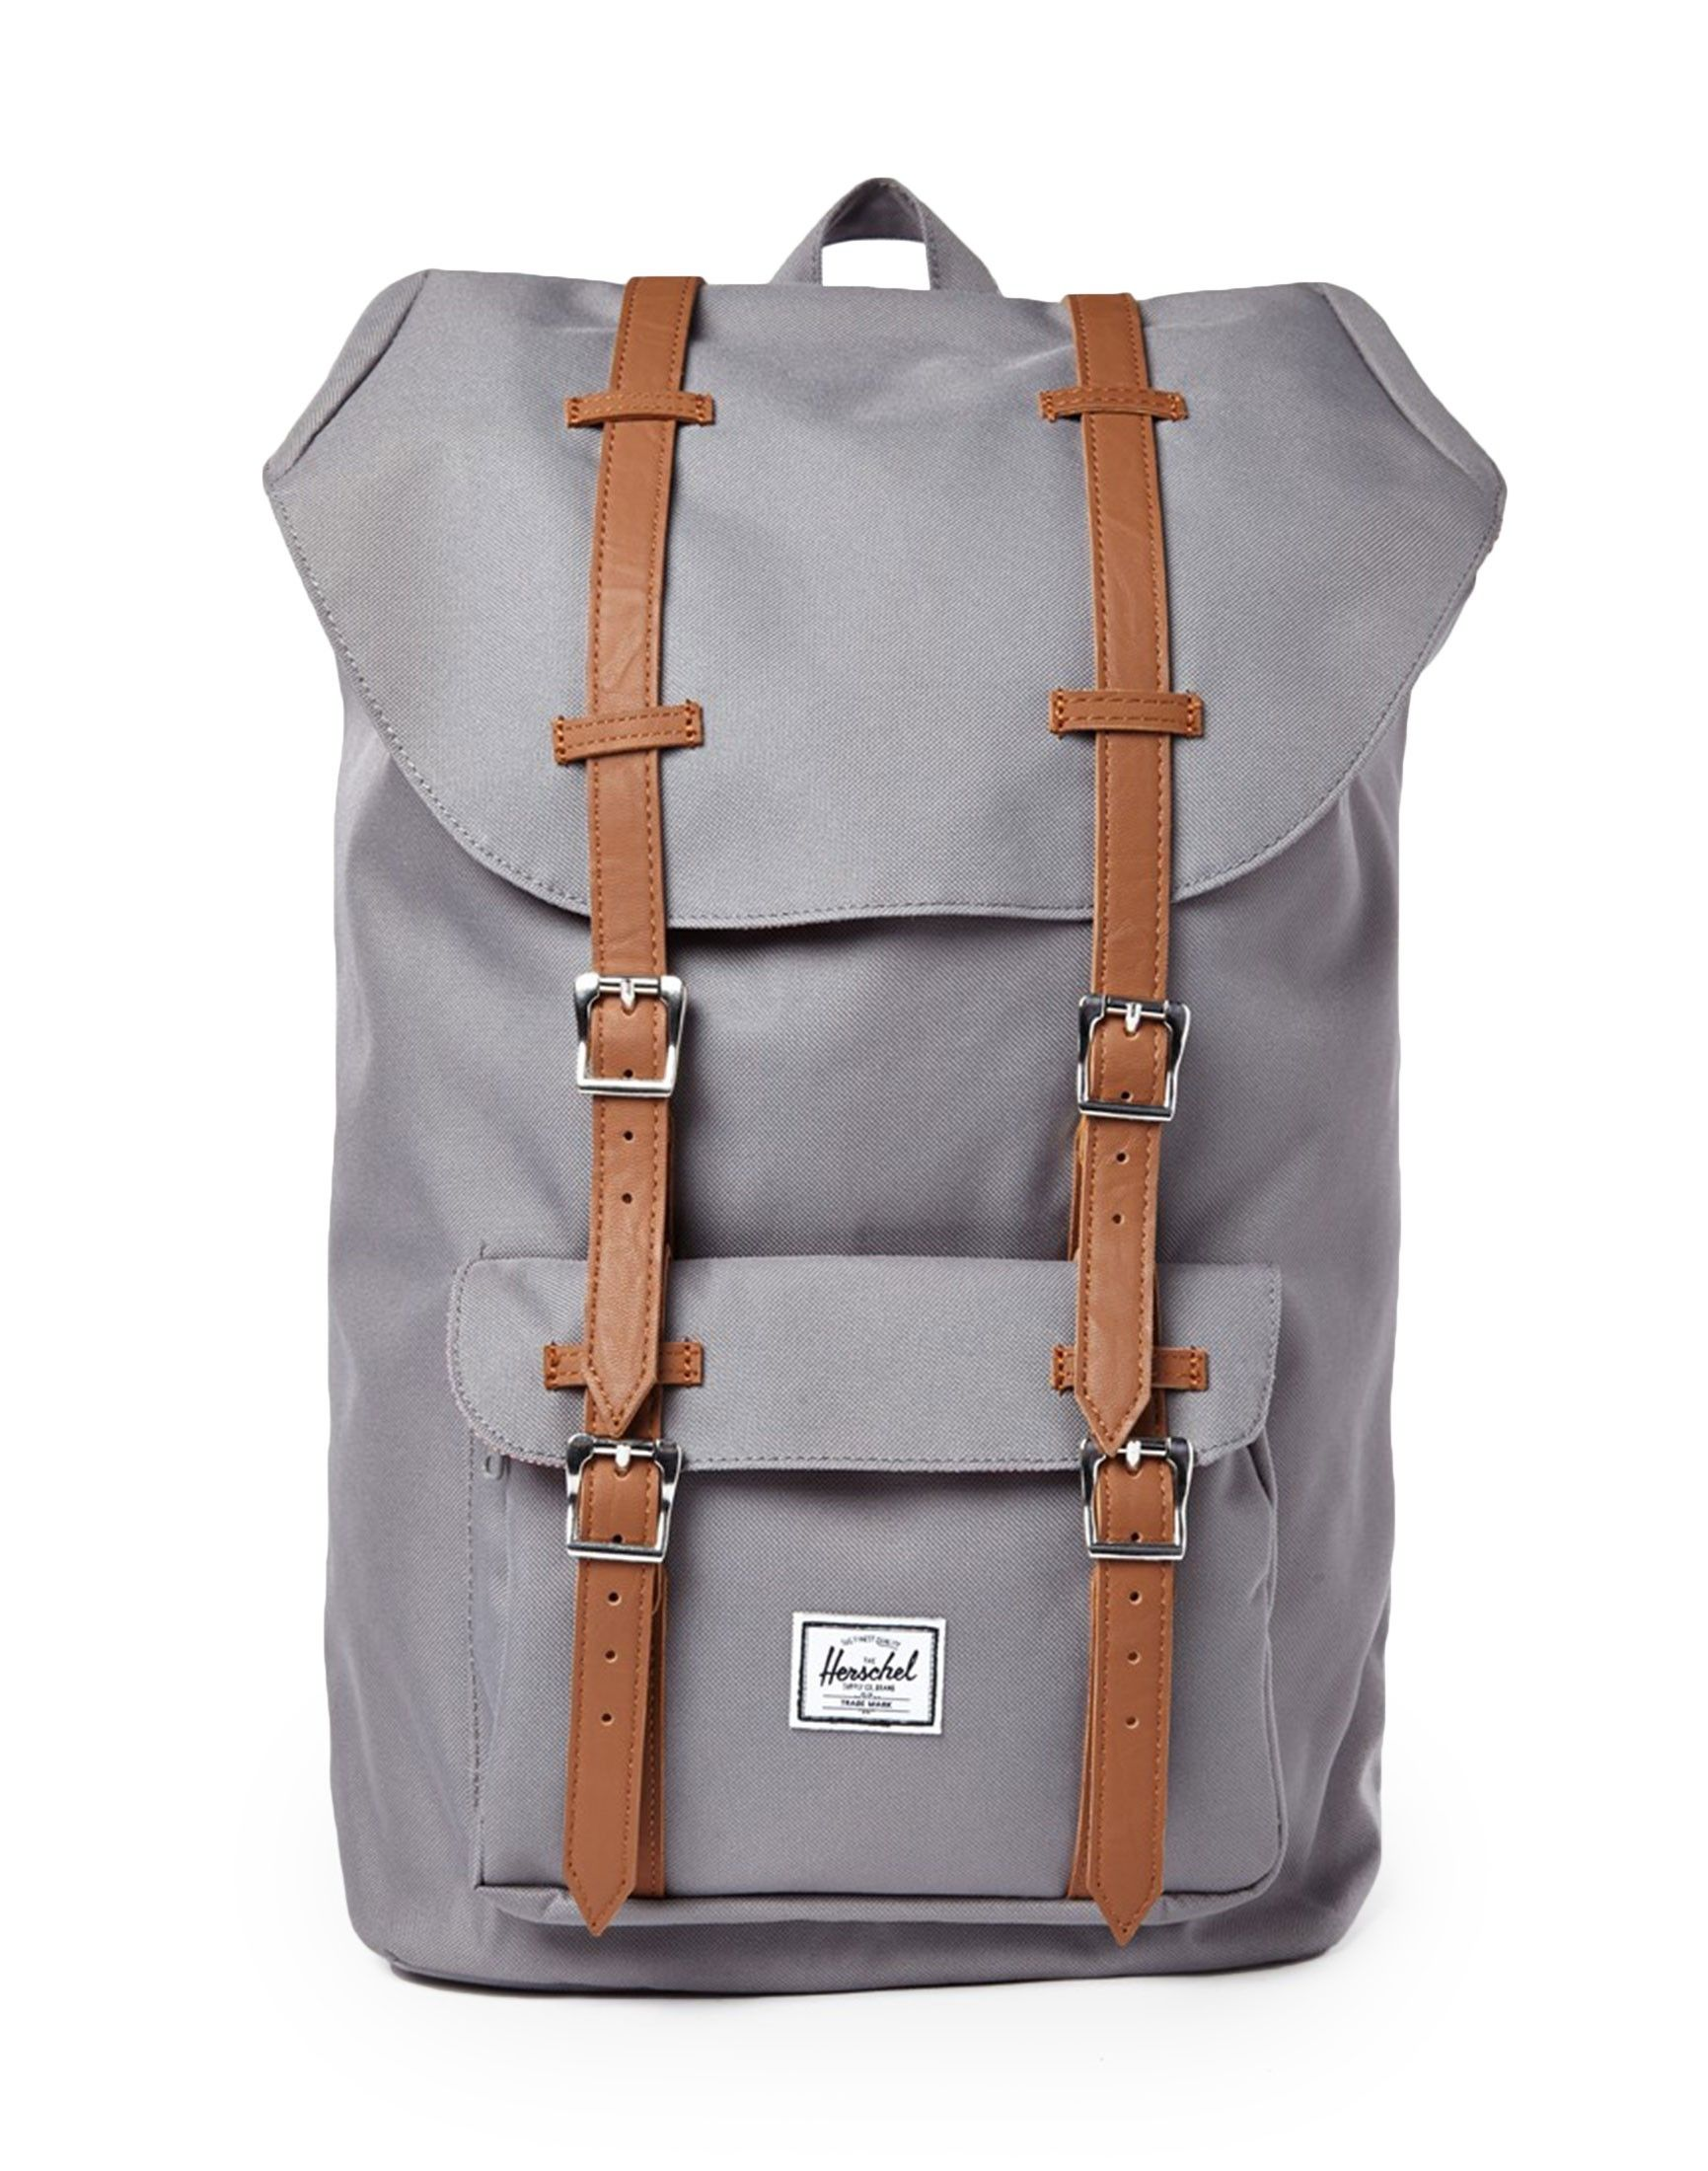 2923f85b6e5 You can now buy Herschel Supply Co. Little Americas online from menswear  retailer THE IDLE MAN.